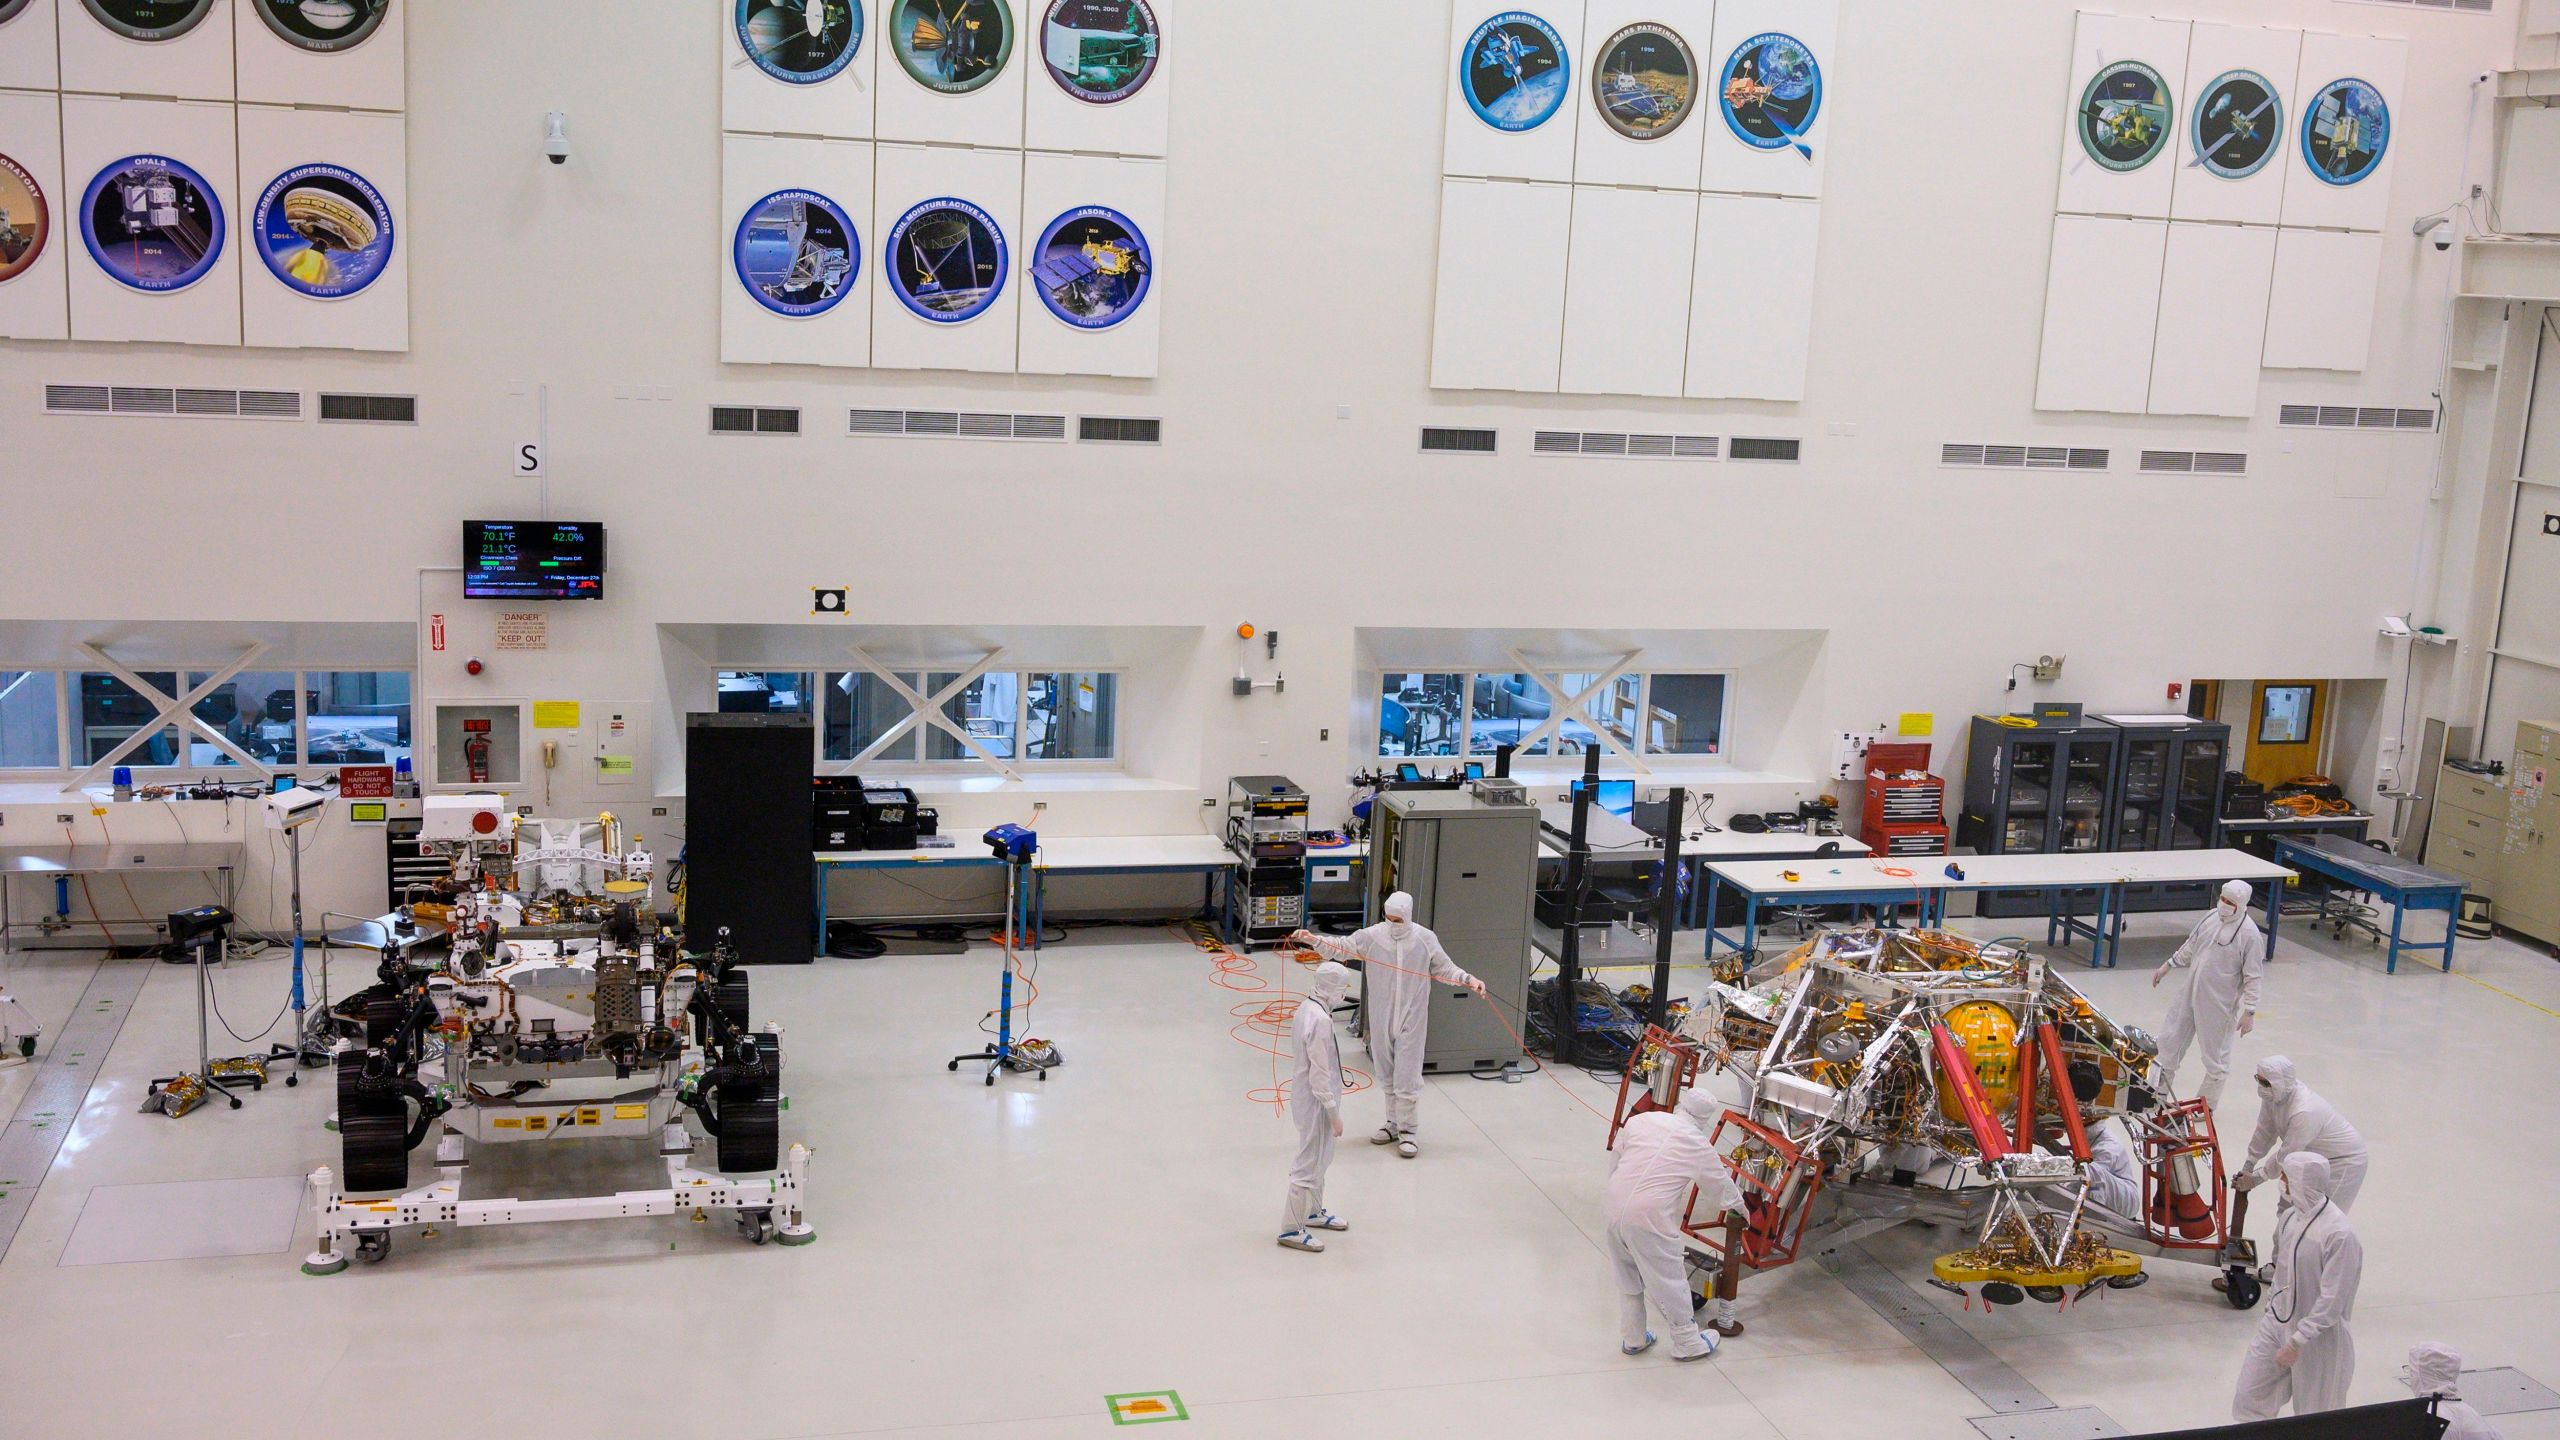 NASA engineers and technicians move the Mars 2020 spacecraft descent stage on Dec. 27, 2019, during a media tour of the spacecraft assembly area clean room at NASA's Jet Propulsion Laboratory in Pasadena. (ROBYN BECK/AFP via Getty Images)